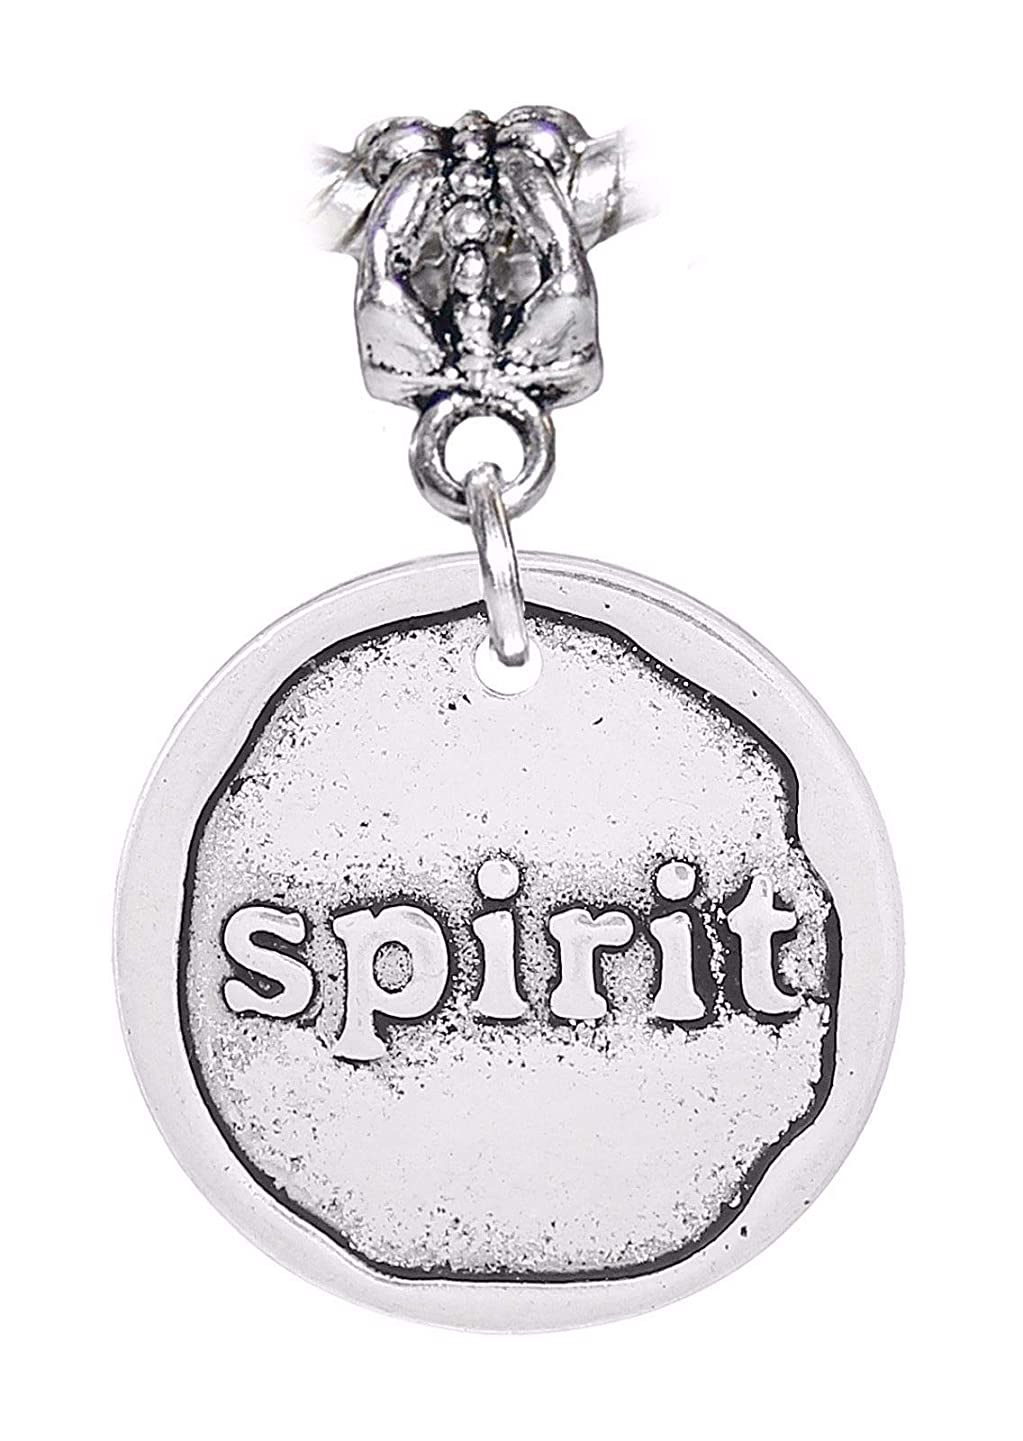 Spirit Inspirational Word Wax Stamp Dangle Charm for European Bead Bracelets Crafting Key Chain Bracelet Necklace Jewelry Accessories Pendants